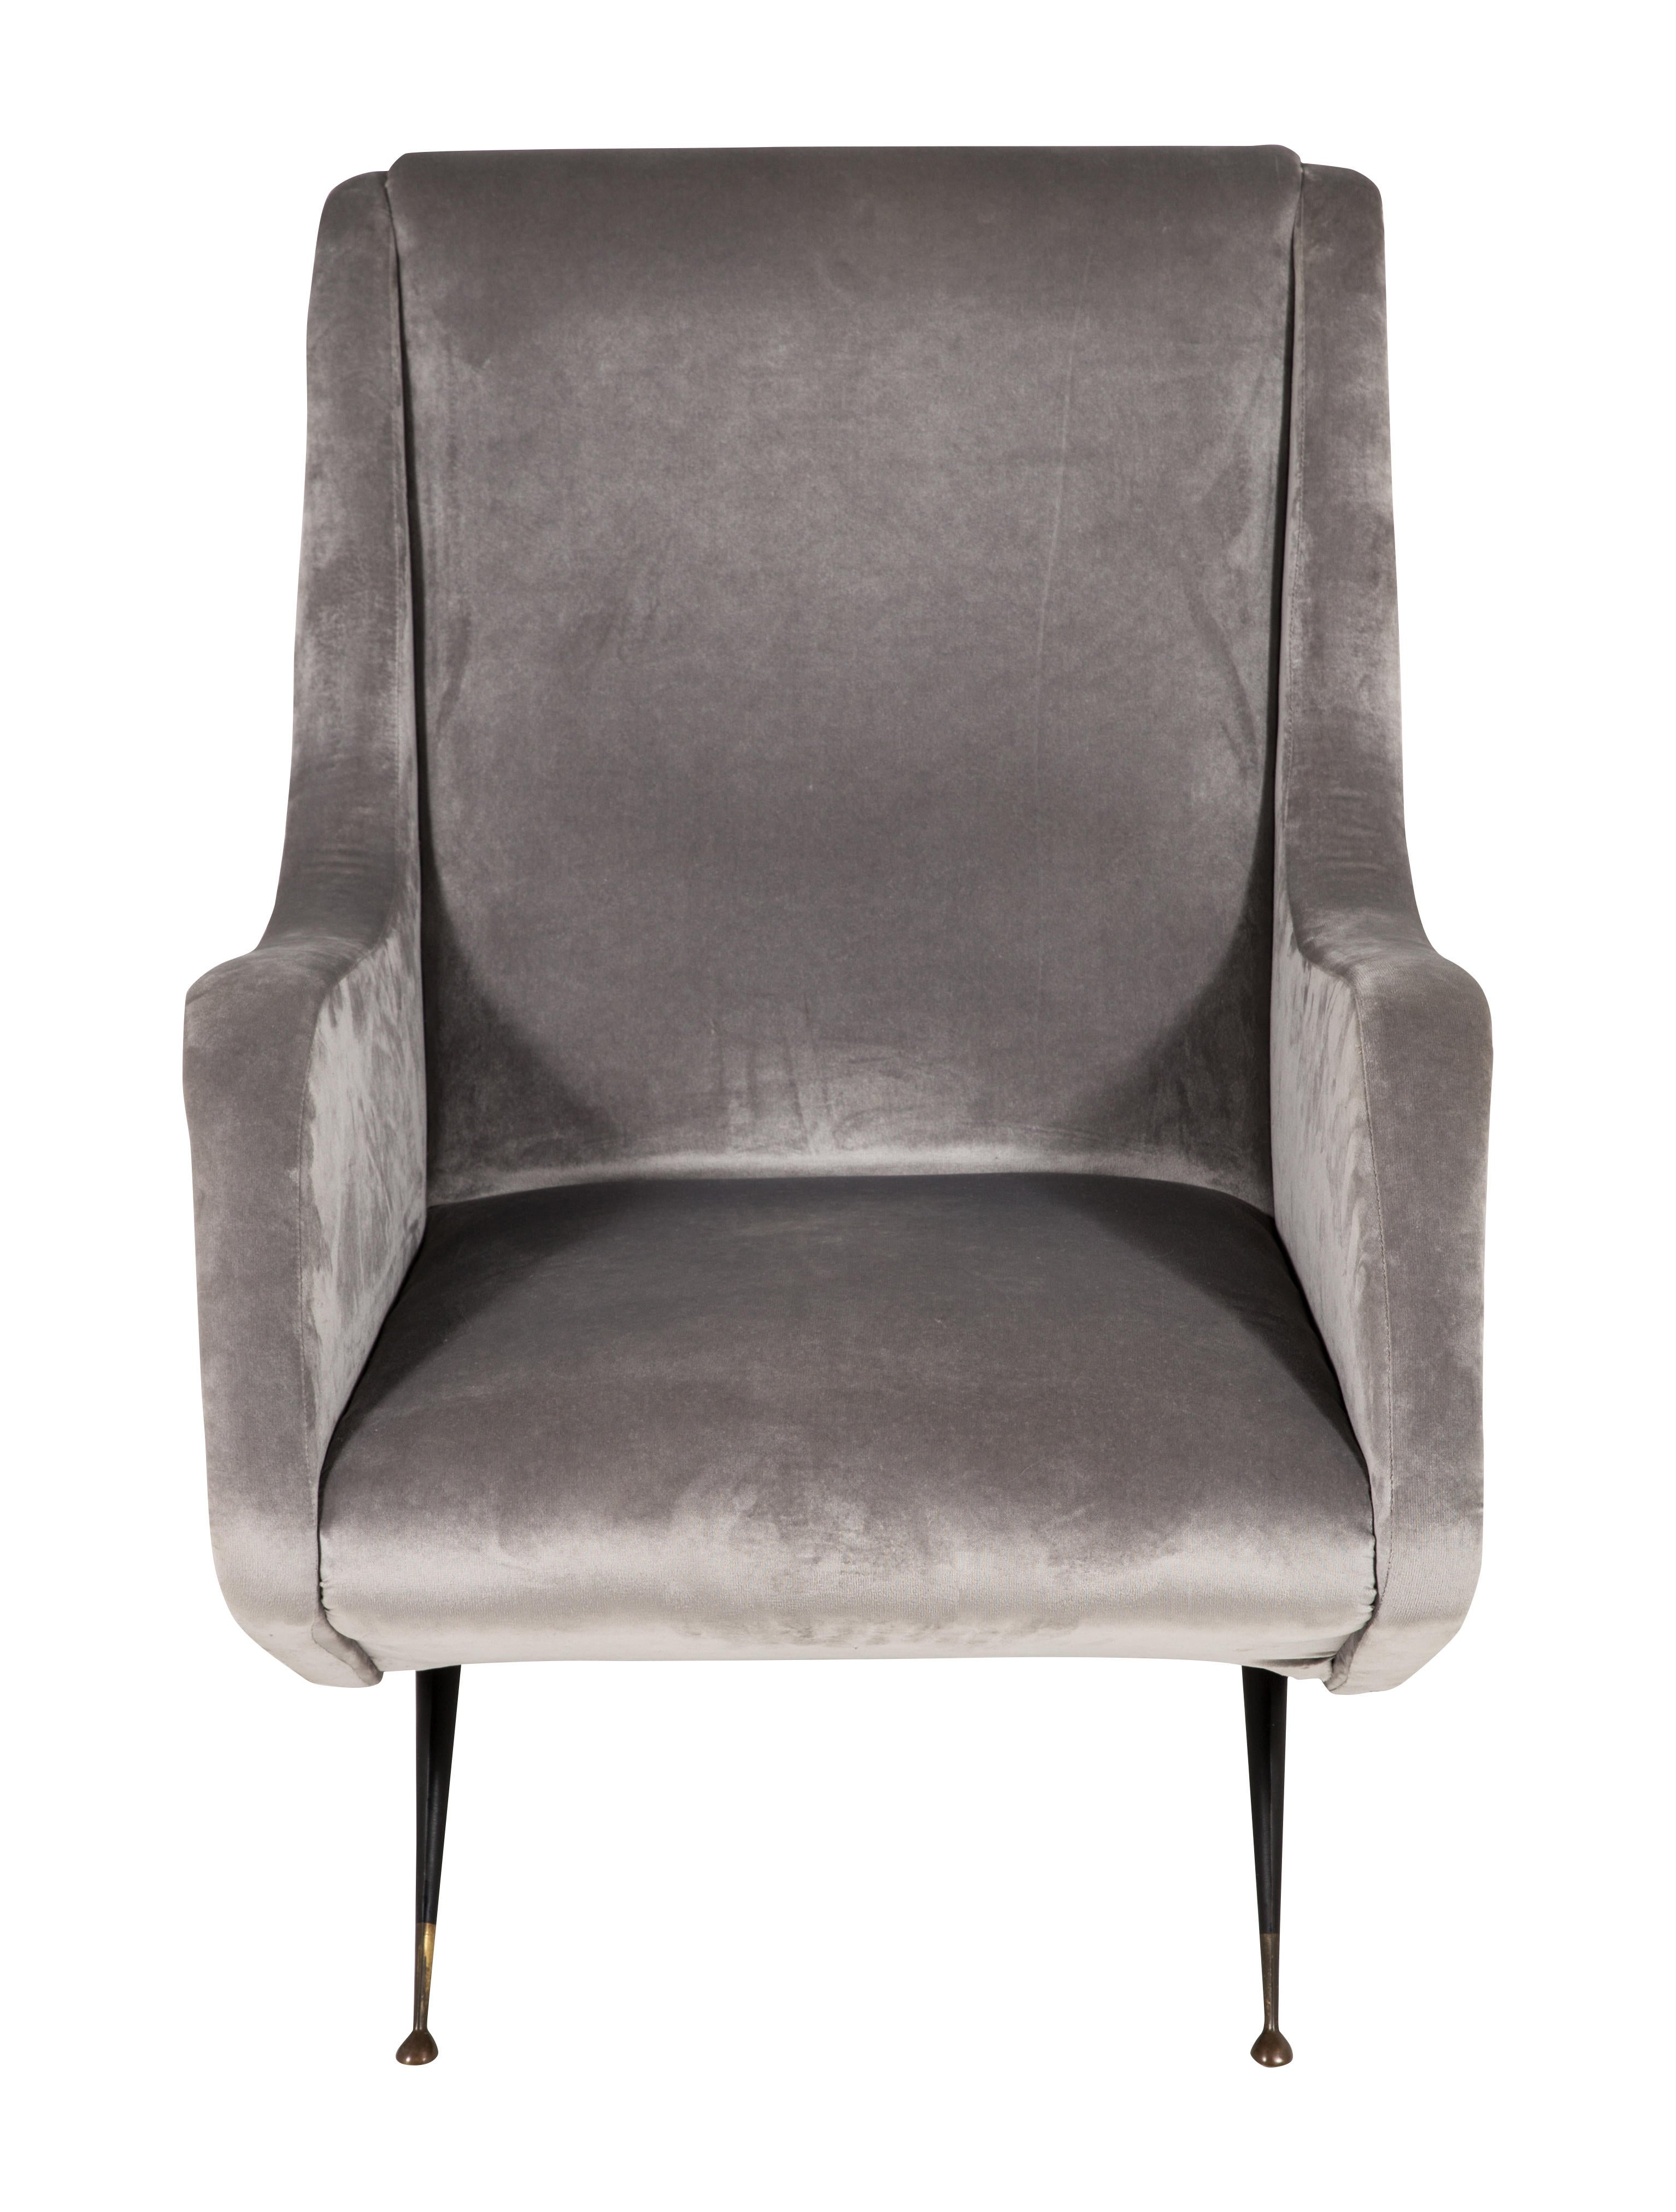 JF Chen Pair Of Club Chairs Furniture JFC The RealReal - Club chairs furniture